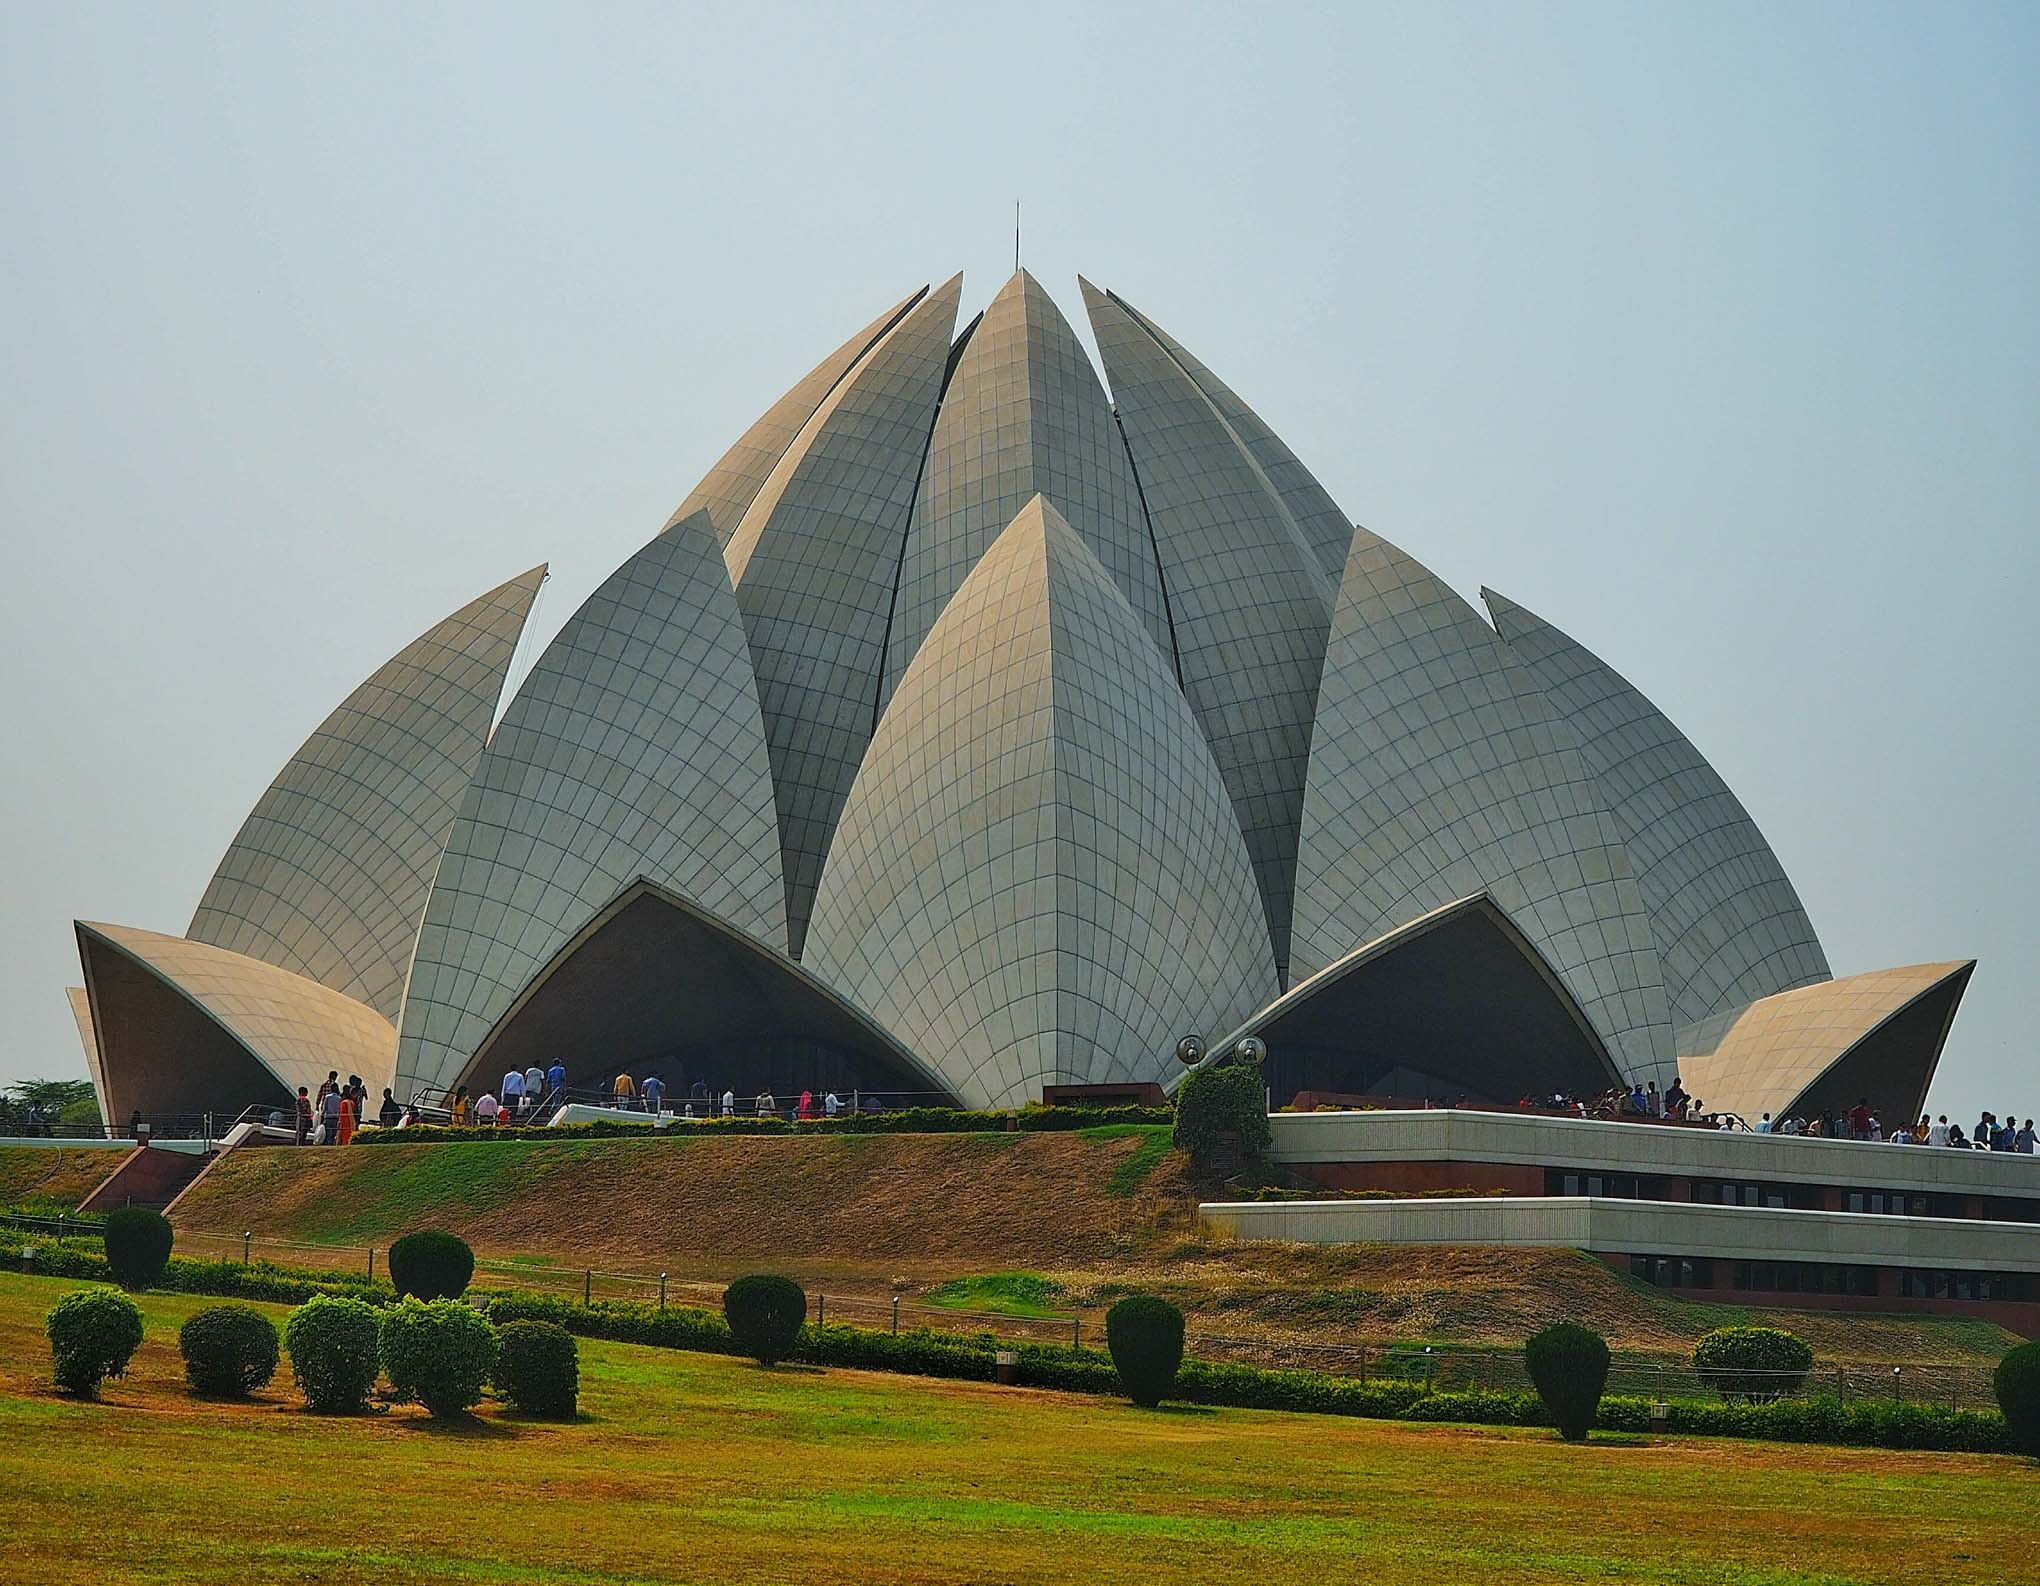 Lotus temple in india